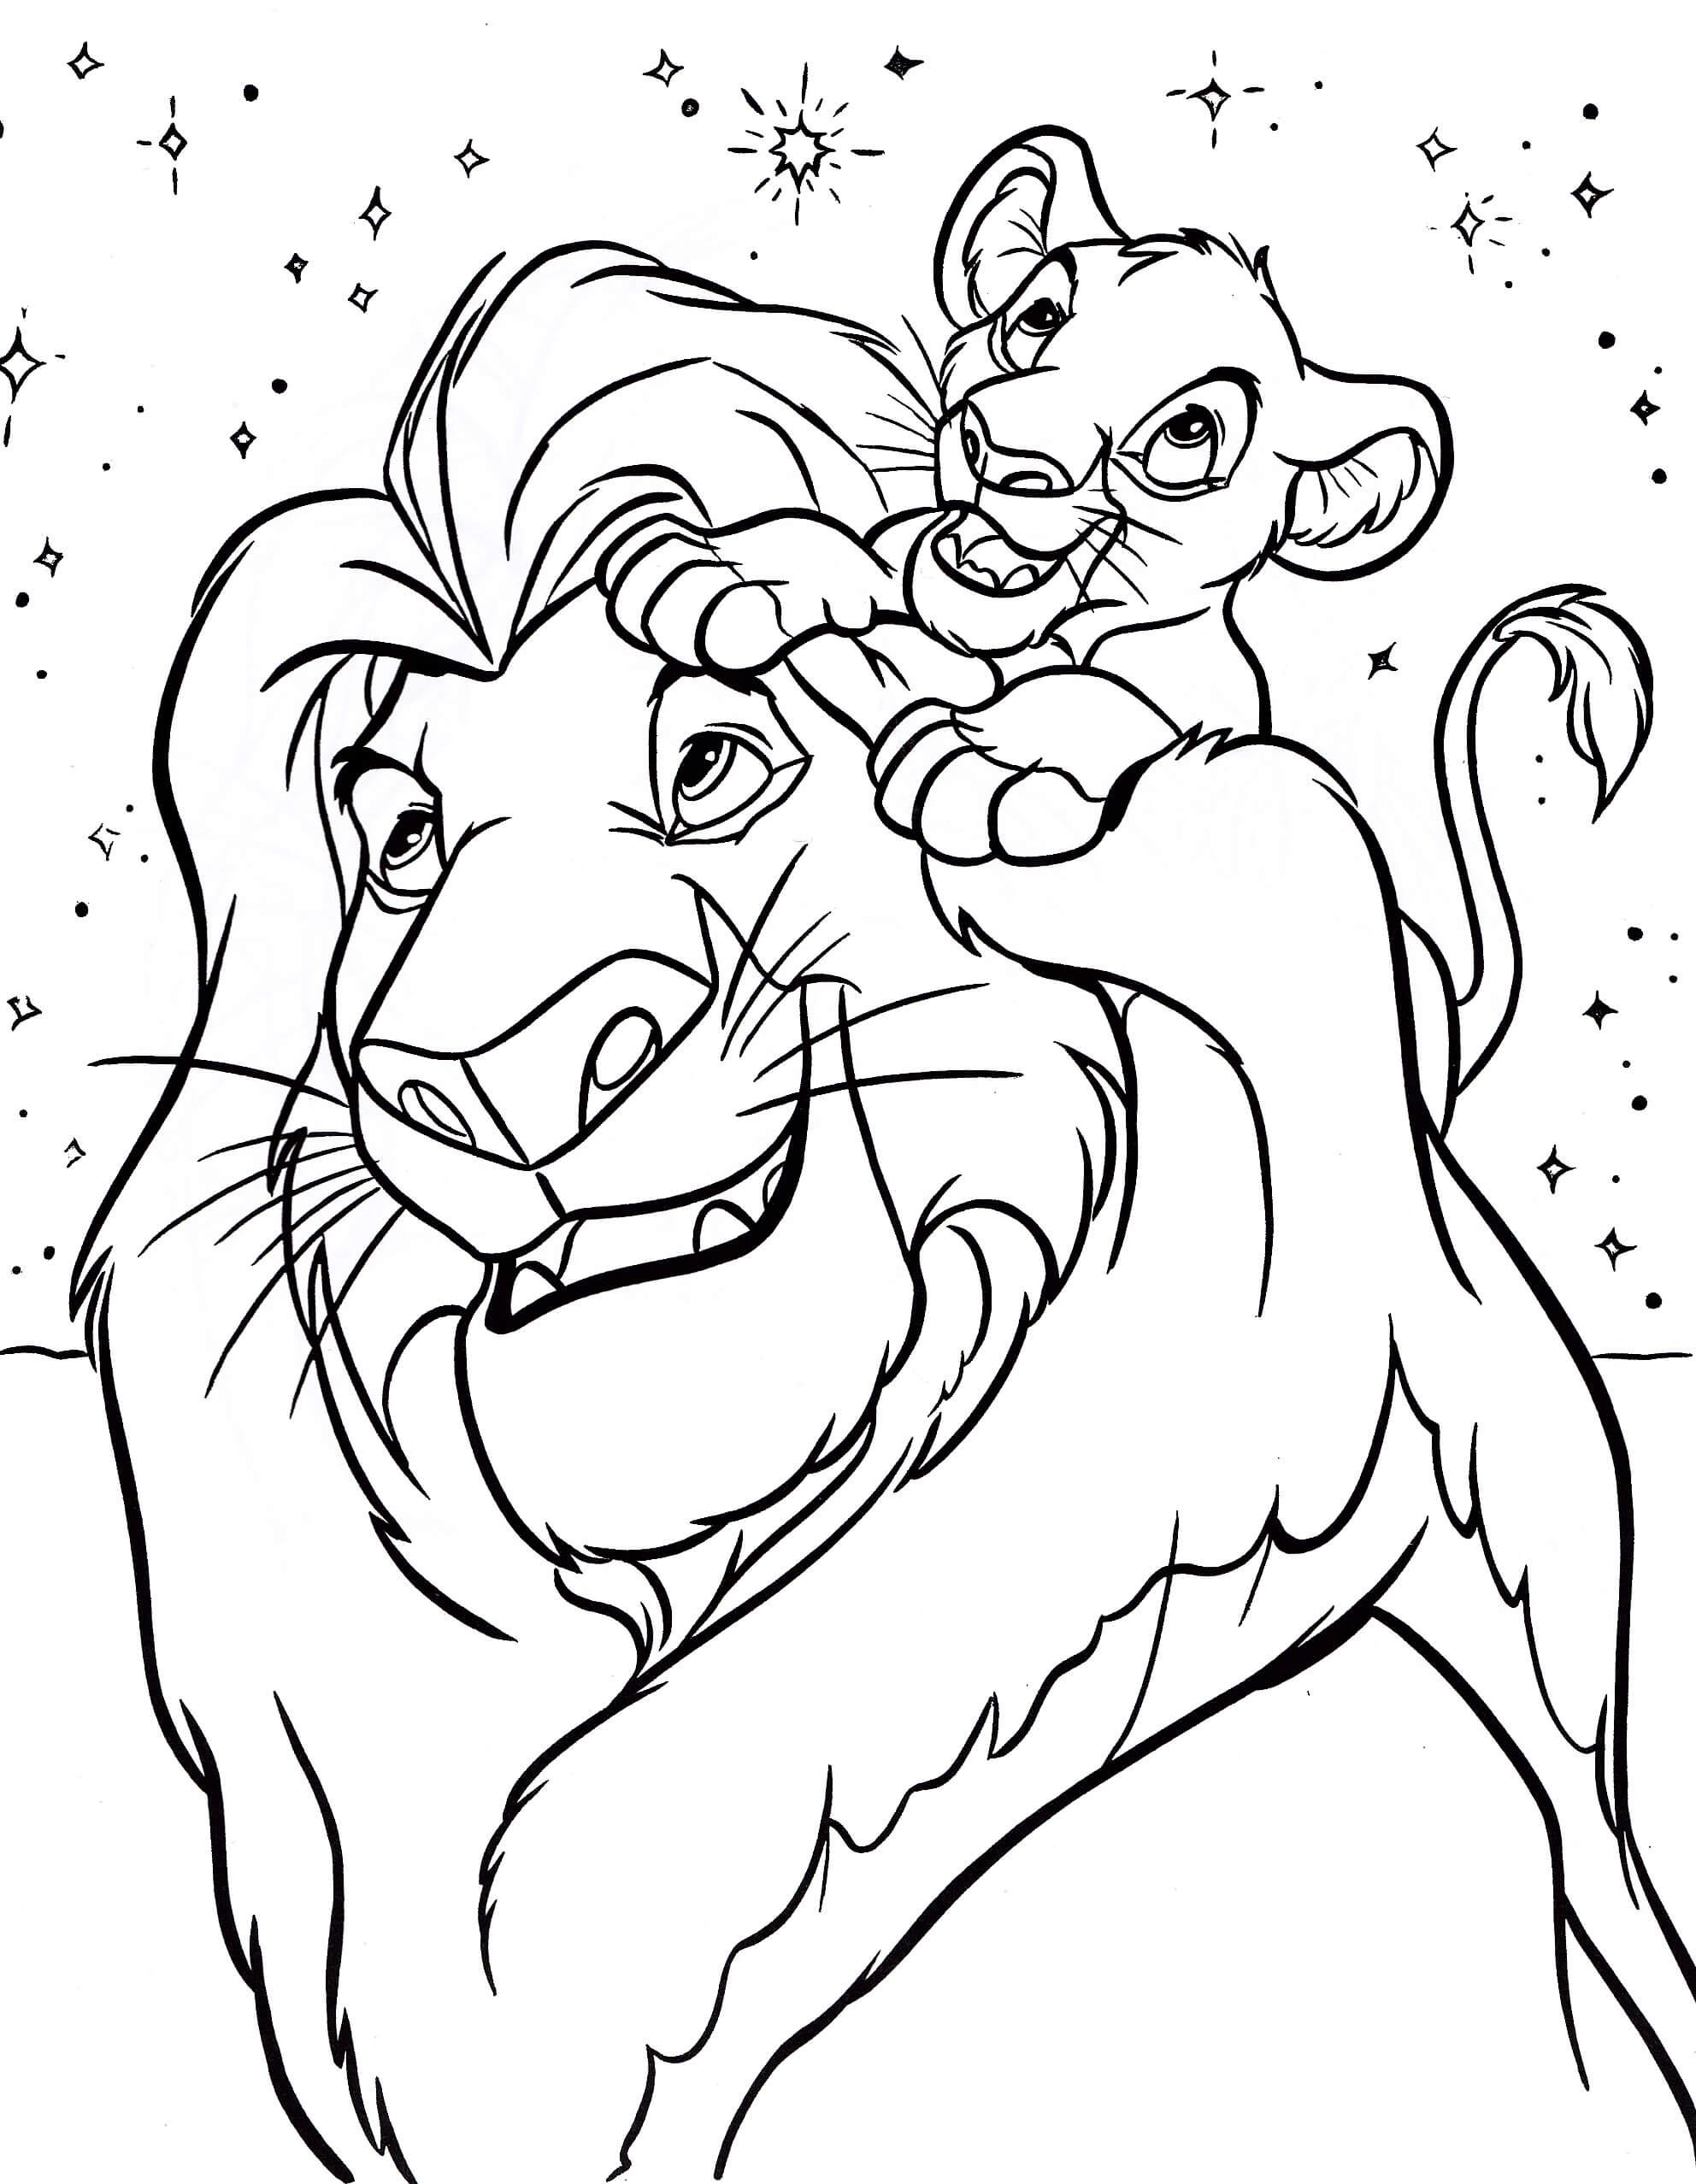 Coloring Pages Of Disney Carictors - Coloring Home | 2555x1984